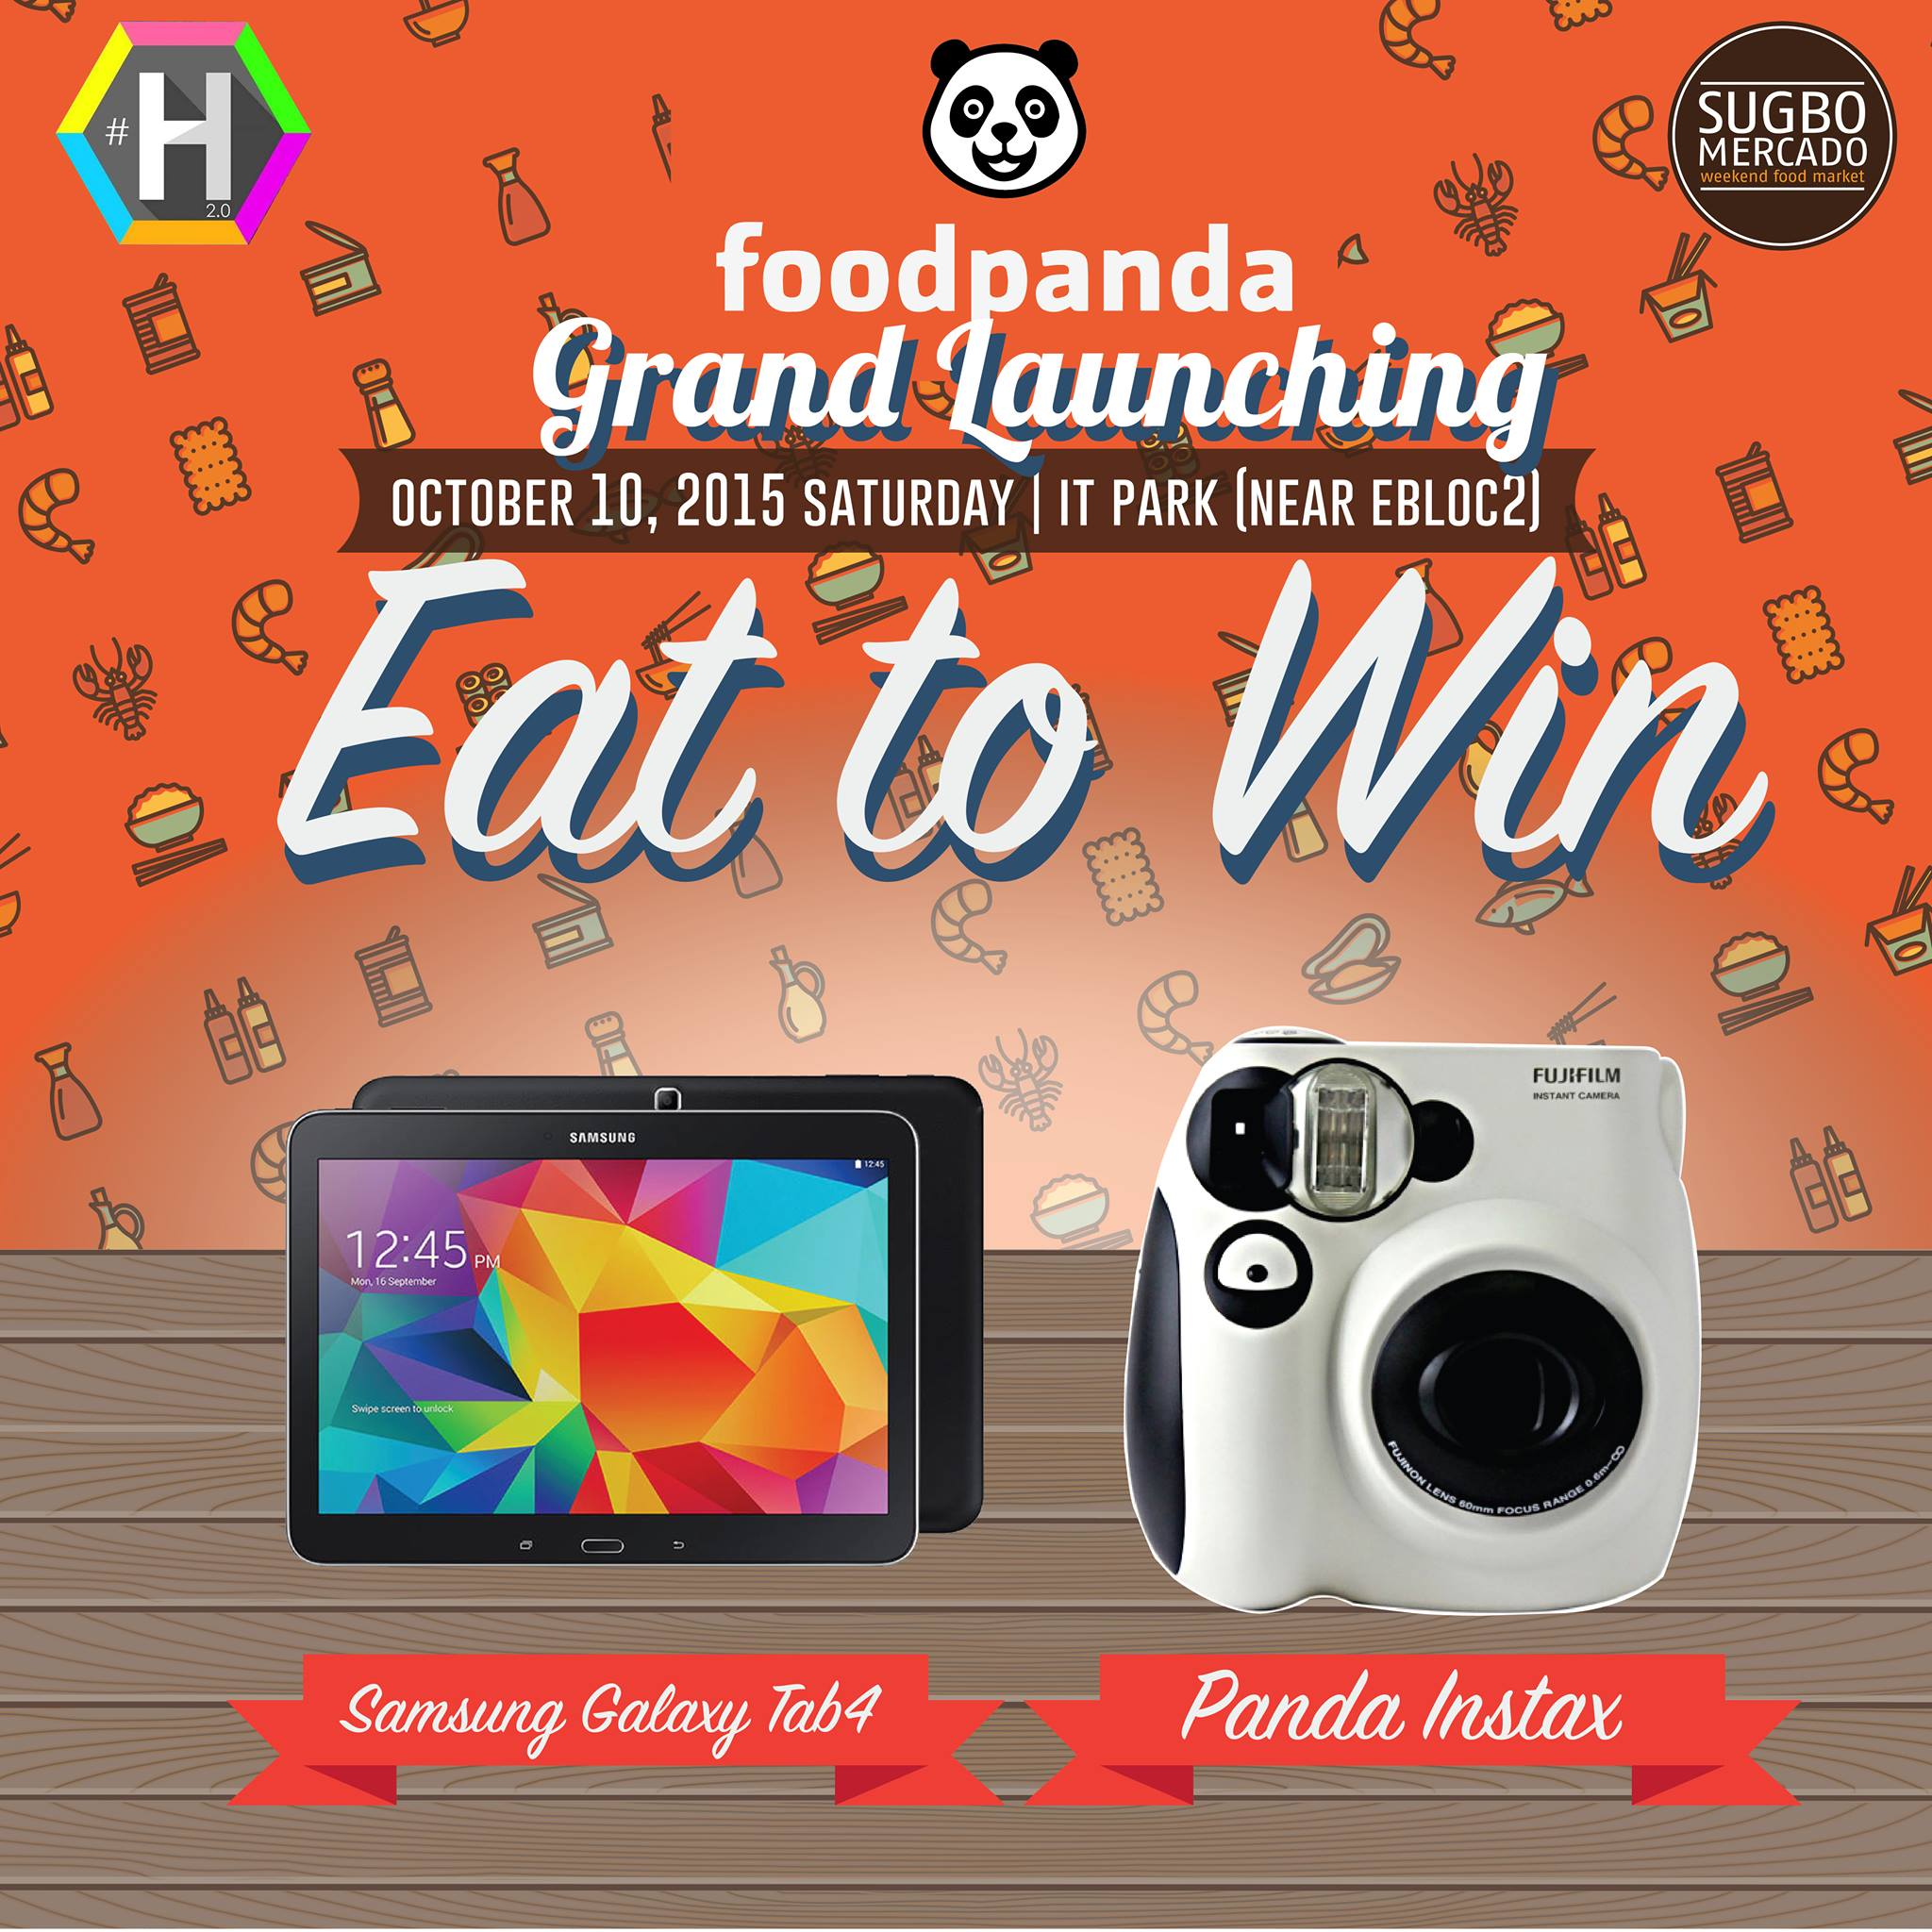 foodpanda grand launching